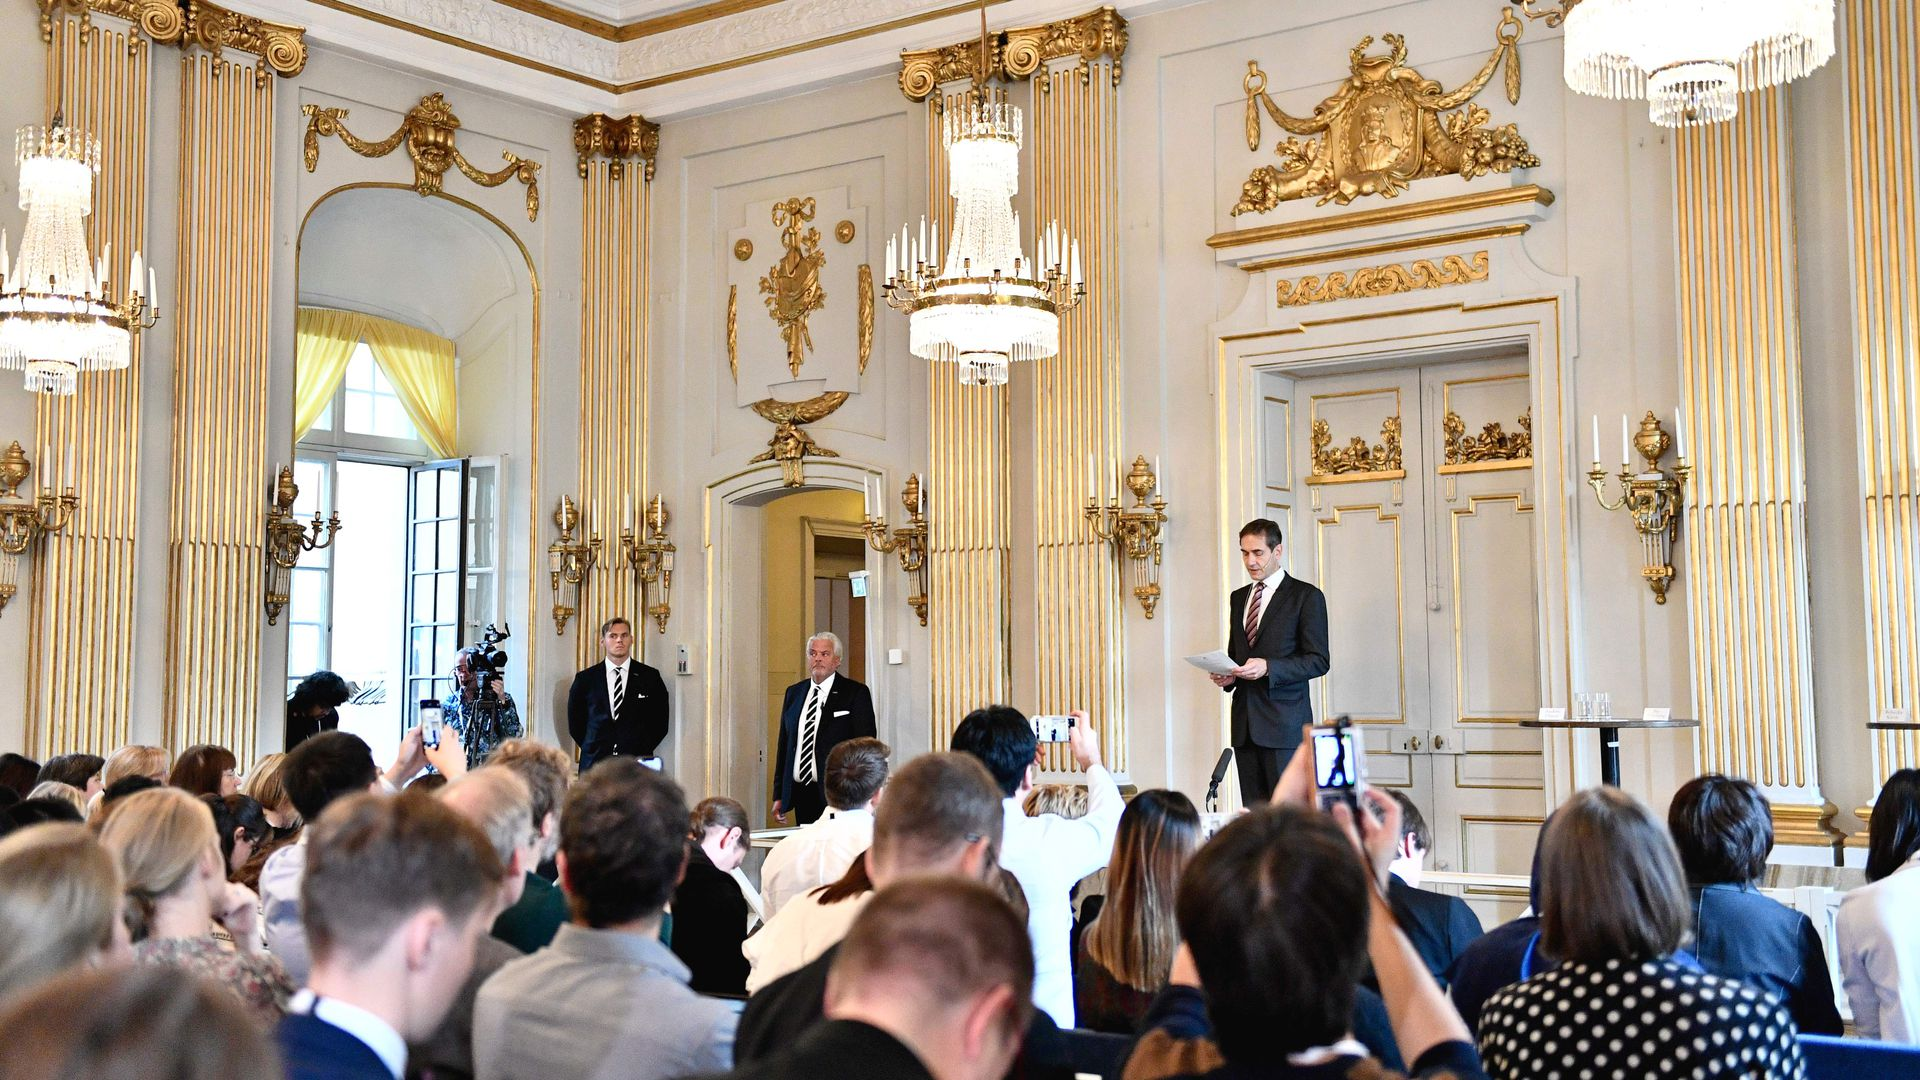 The Swedish Academy announces the winners of the 2018 and 2018 Nobel Parize in literature